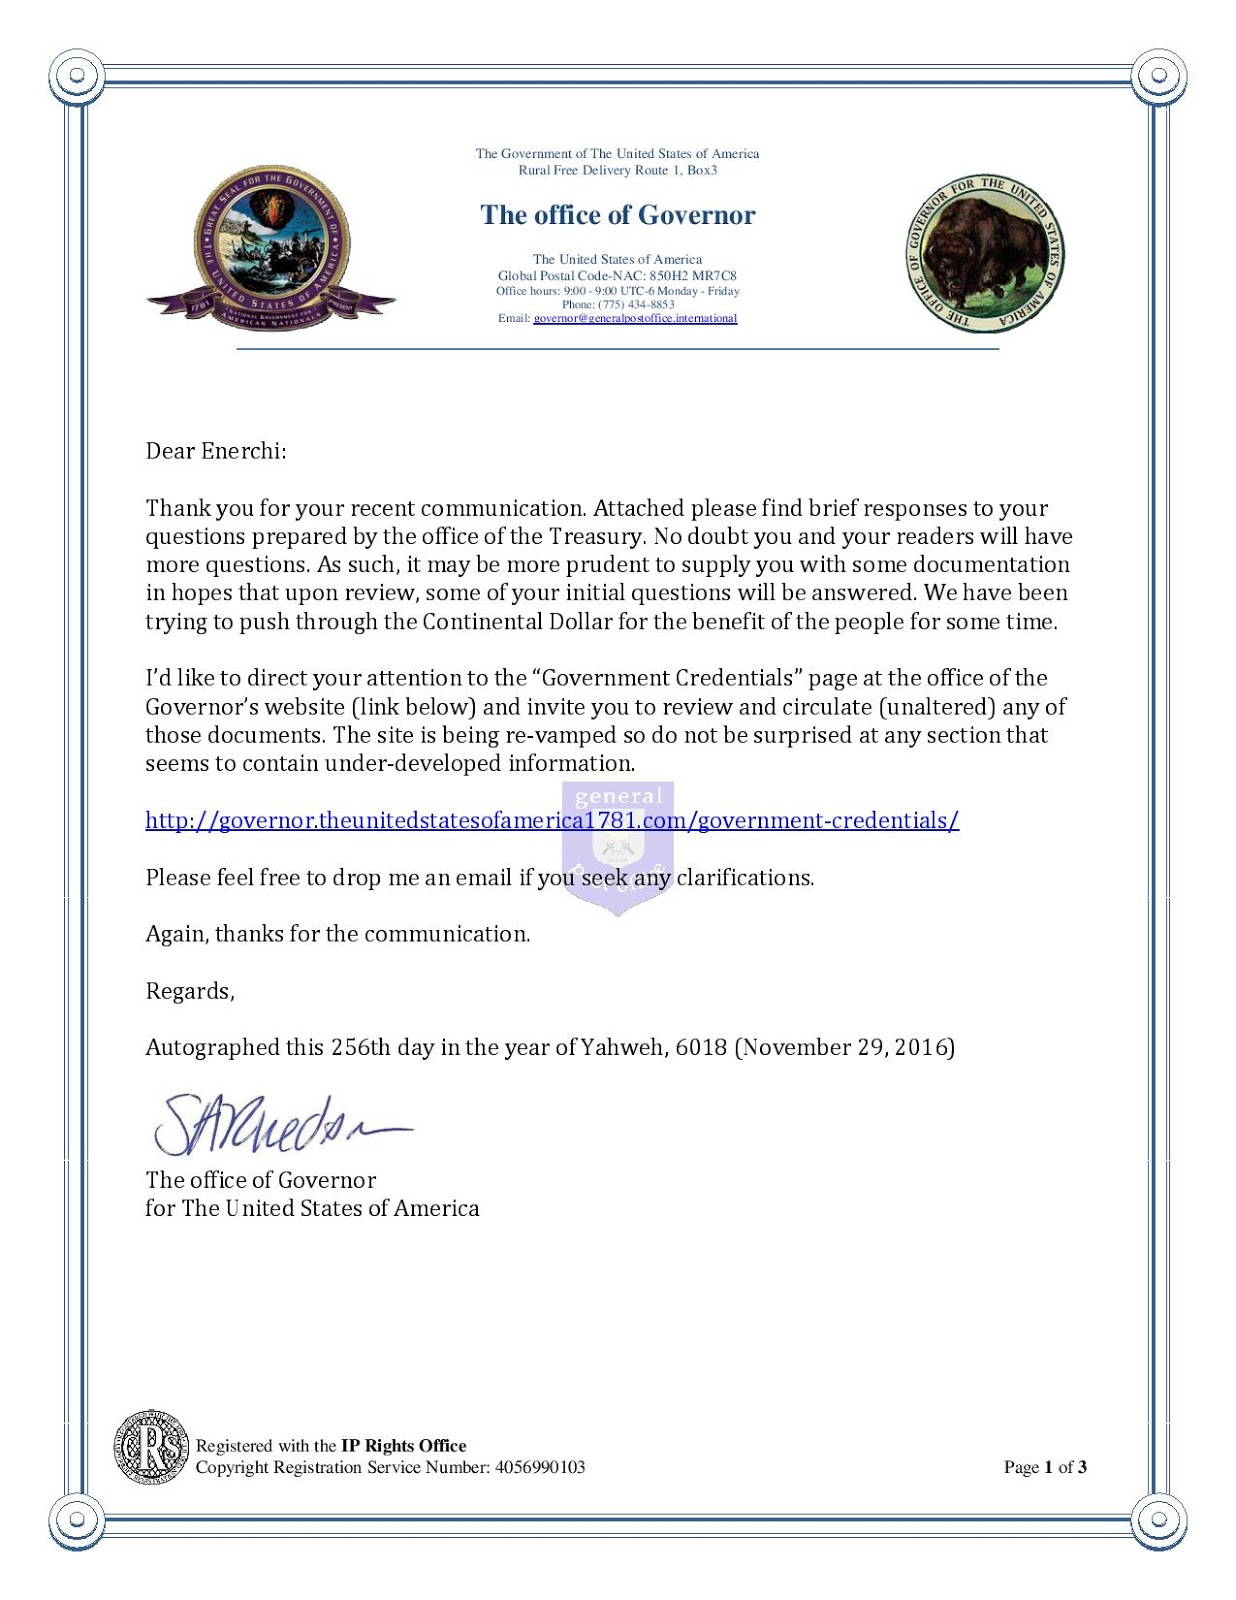 The Continental Dollar is not a hoax! and a message to David Wilcock! 332672646-Response-from-The-office-of-Governor-Regarding-the-new-currency-called-the-Continental-Dollar-page-001